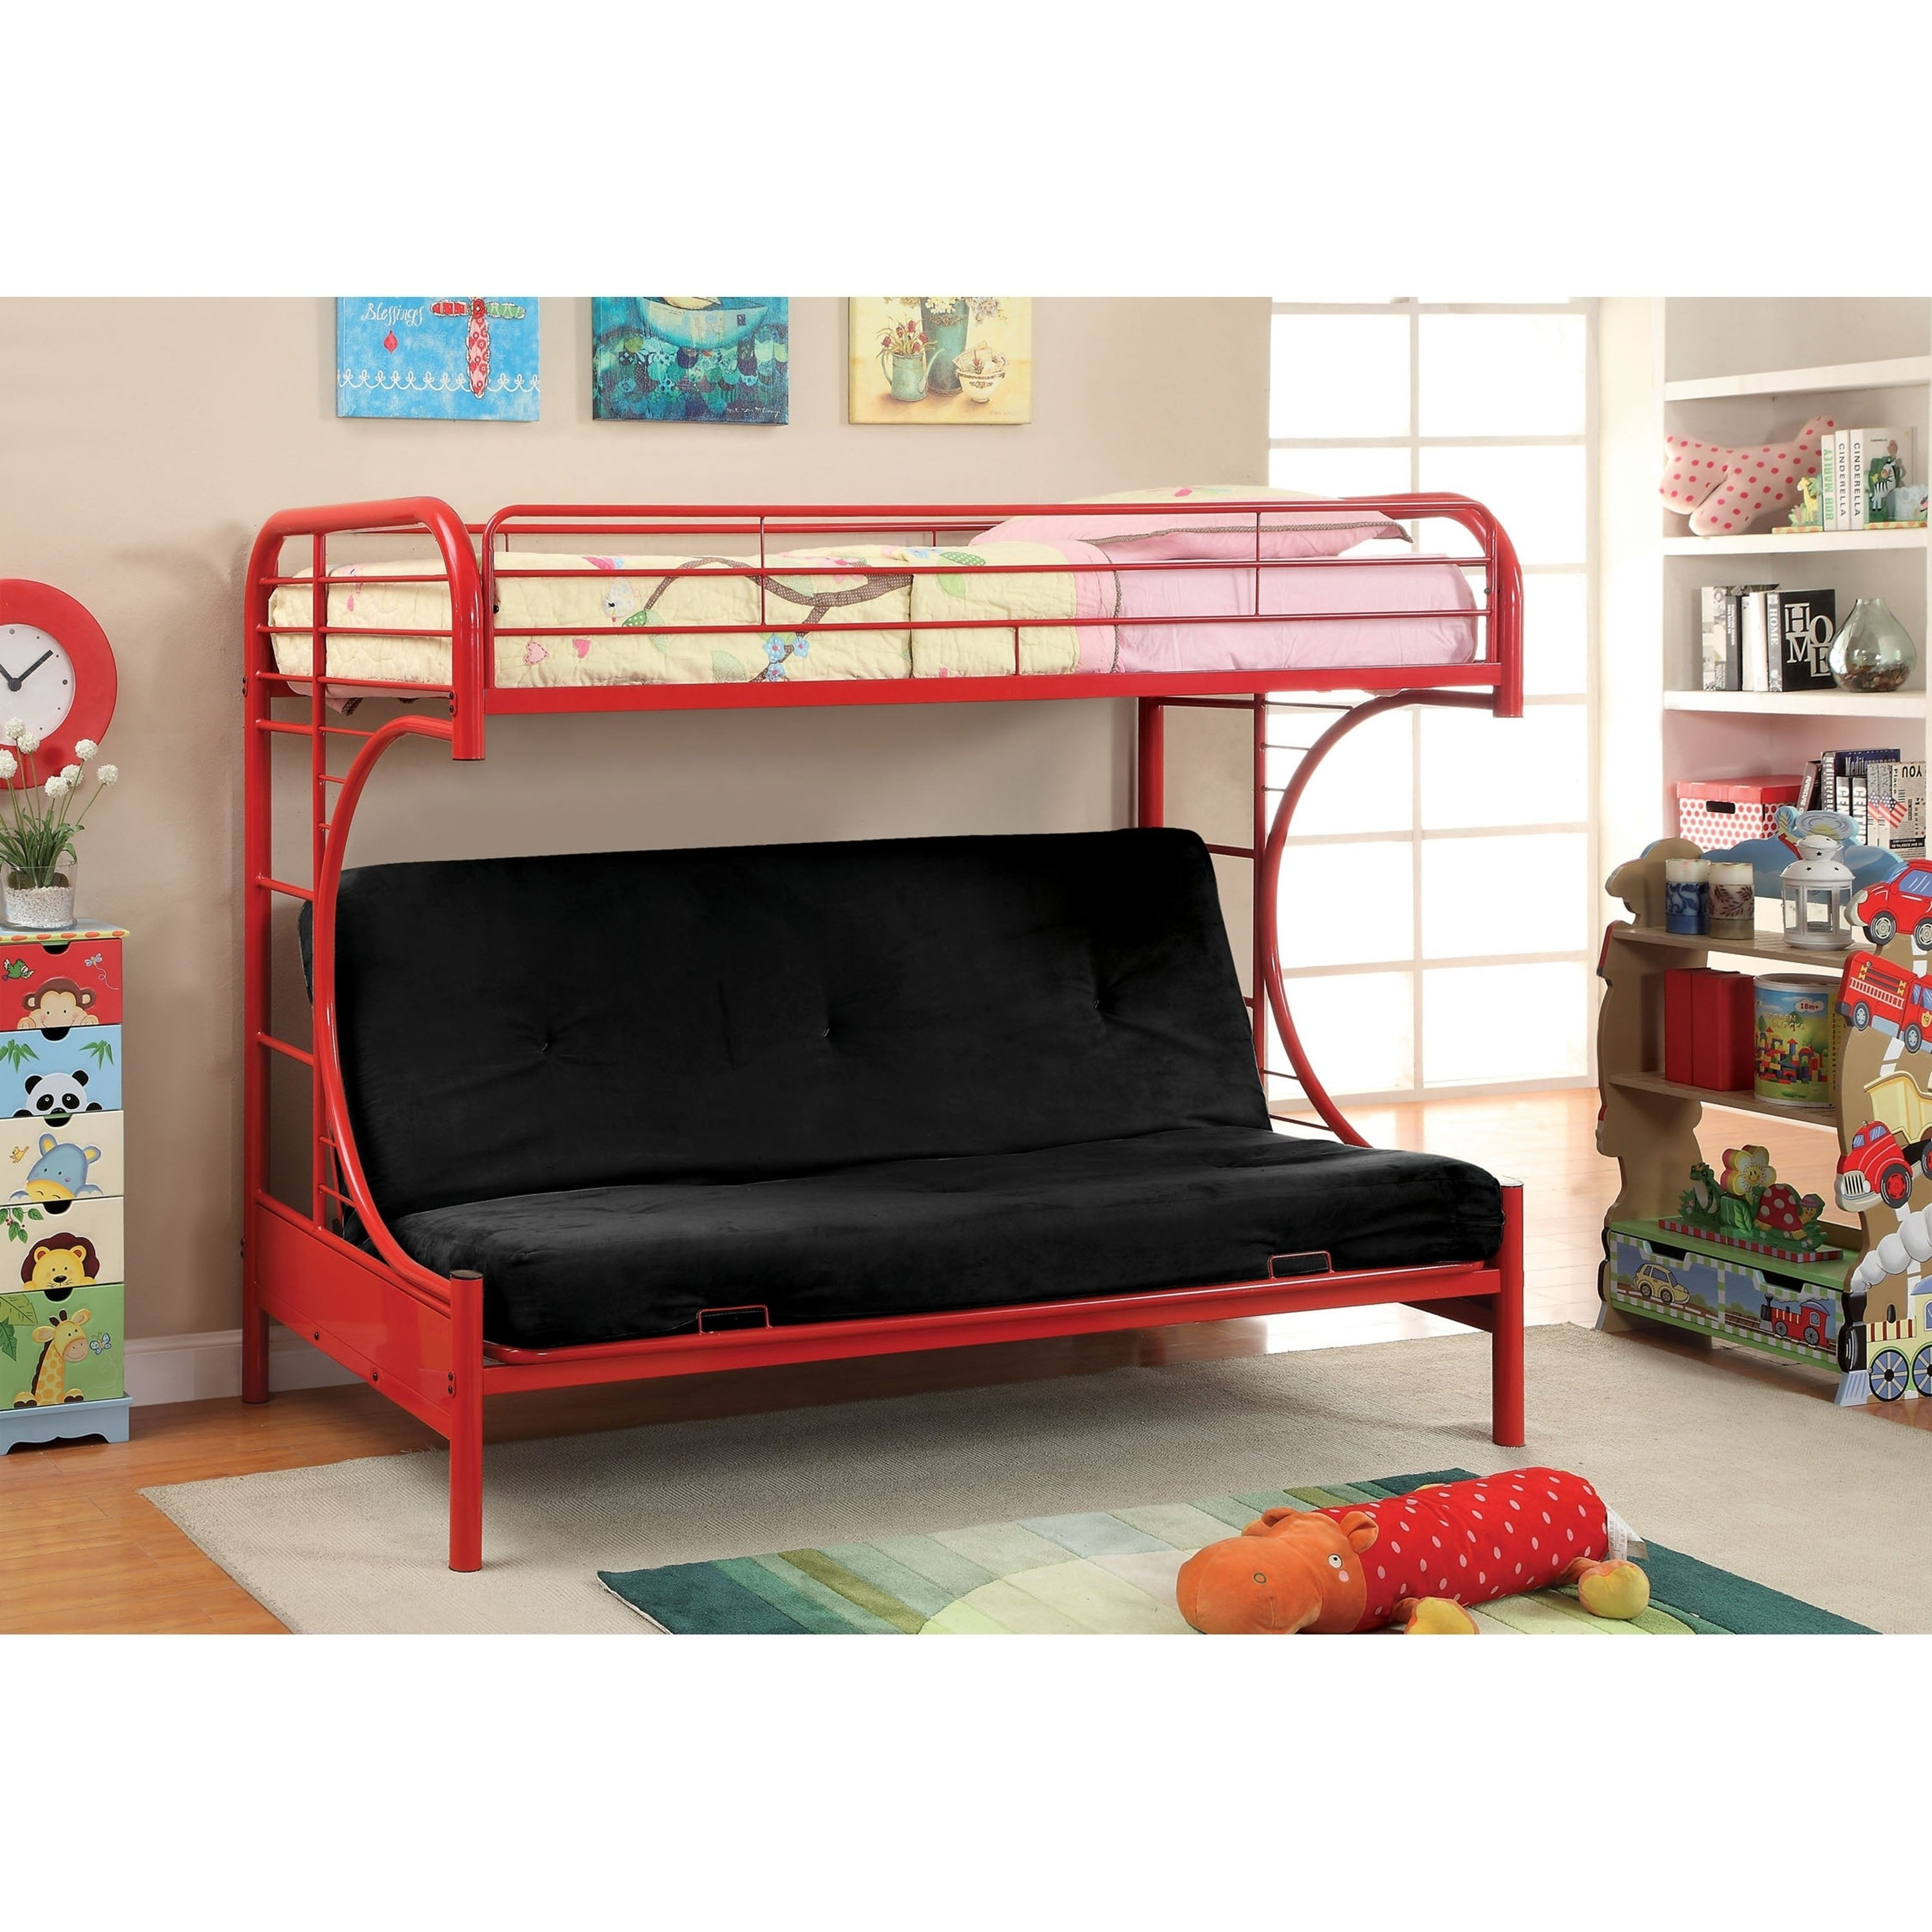 Kids Bunk Bed Bedroom Set Lovely Furniture Of America Hind Transitional Red Twin Futon Metal Bunk Bed